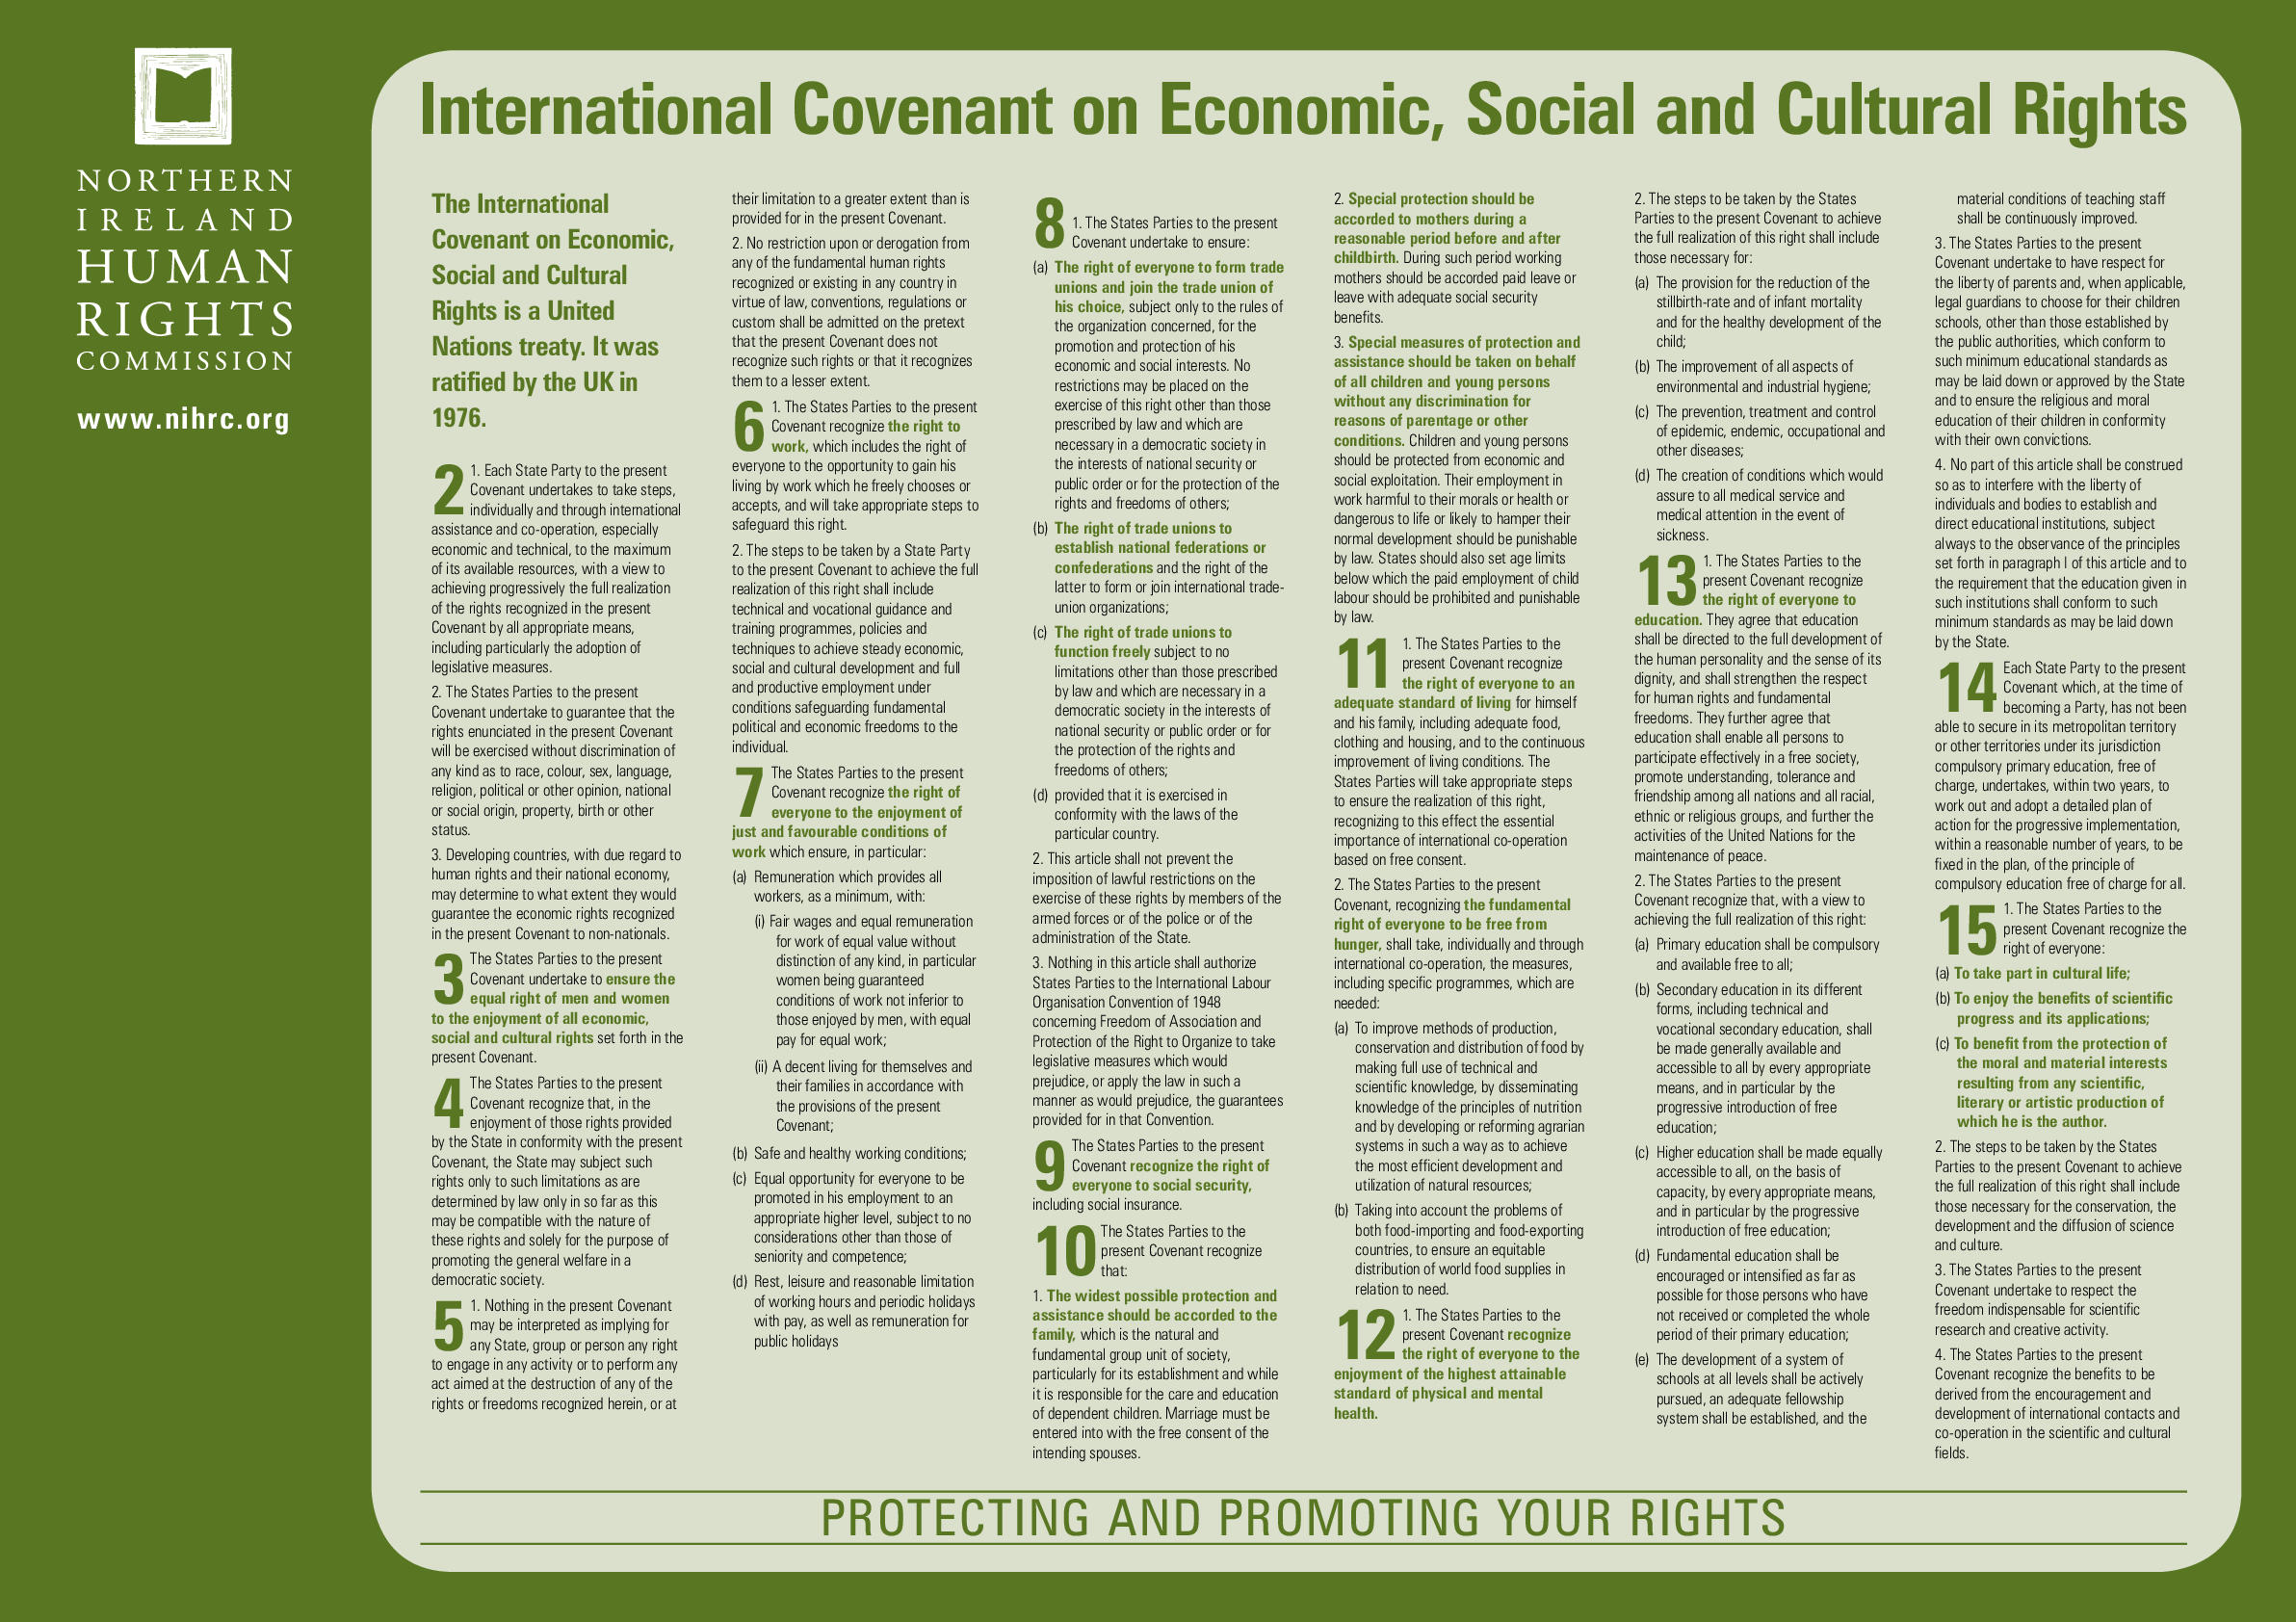 International Covenant on Economic, Social and Cultural Rights (ICESCR) Poster - resource 1